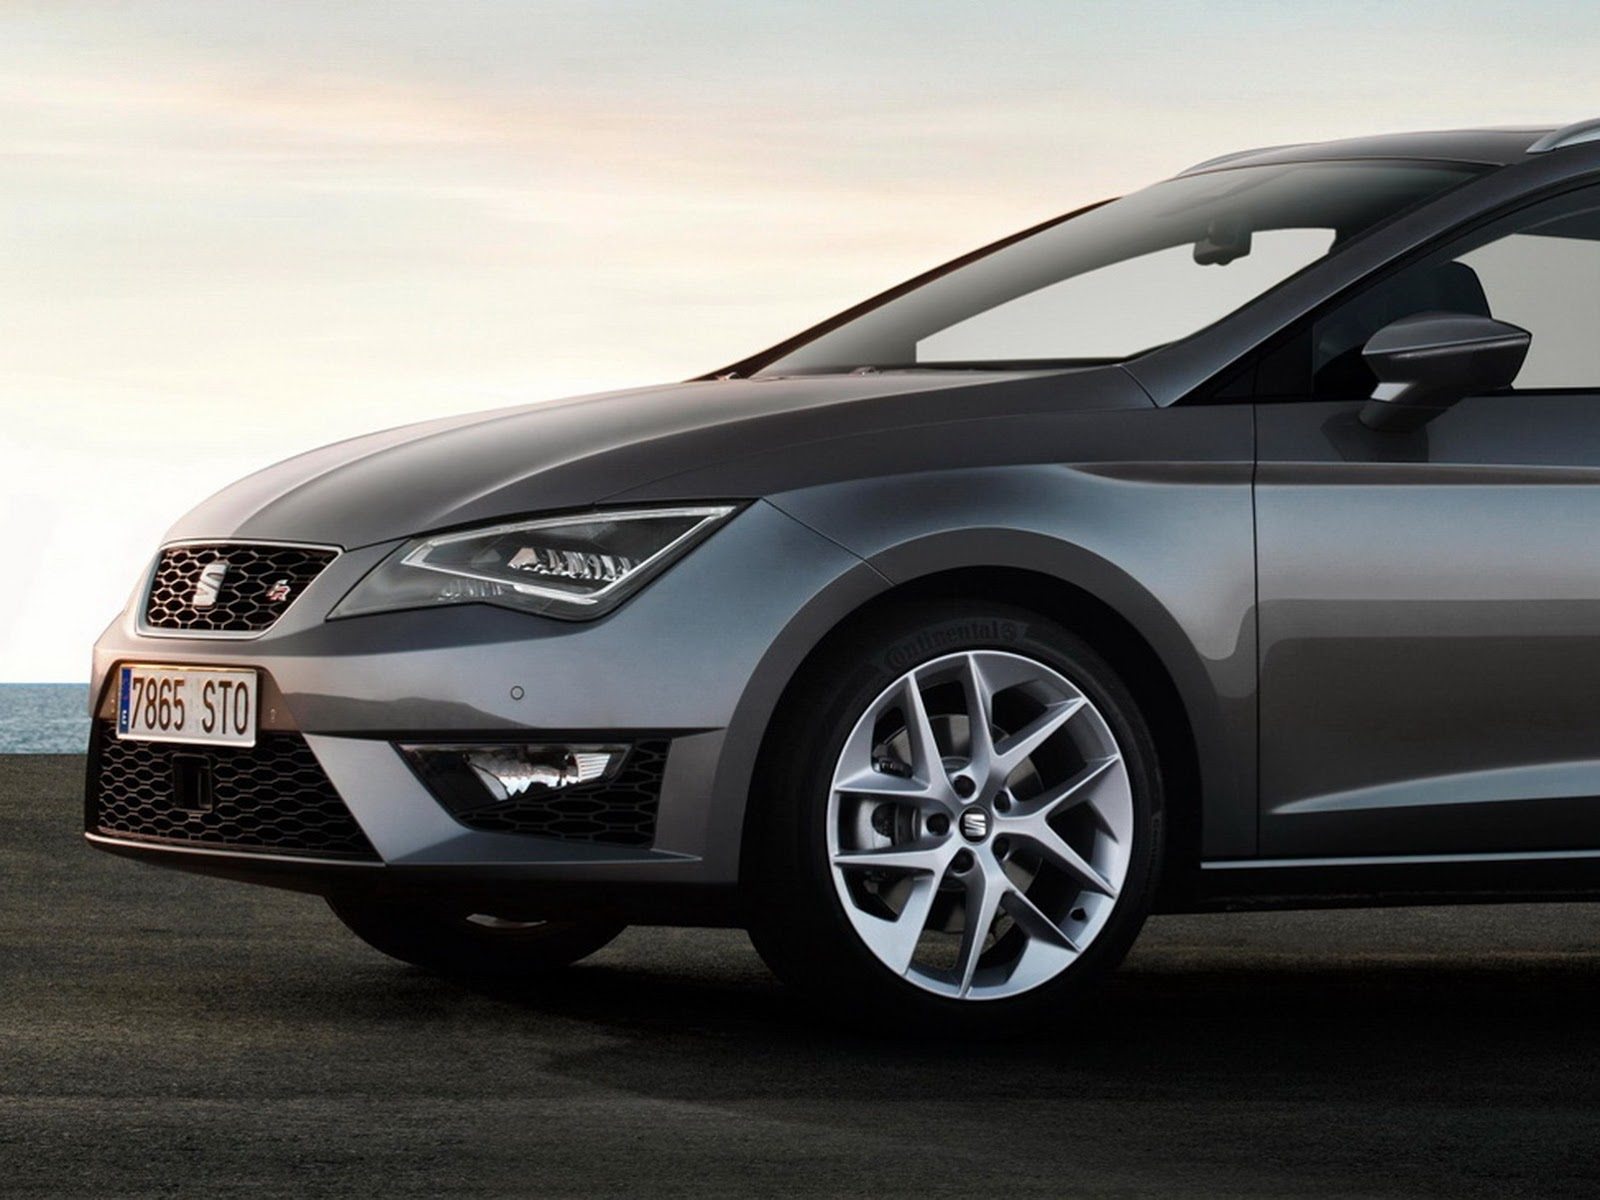 2014 seat leon st revealed autoevolution. Black Bedroom Furniture Sets. Home Design Ideas